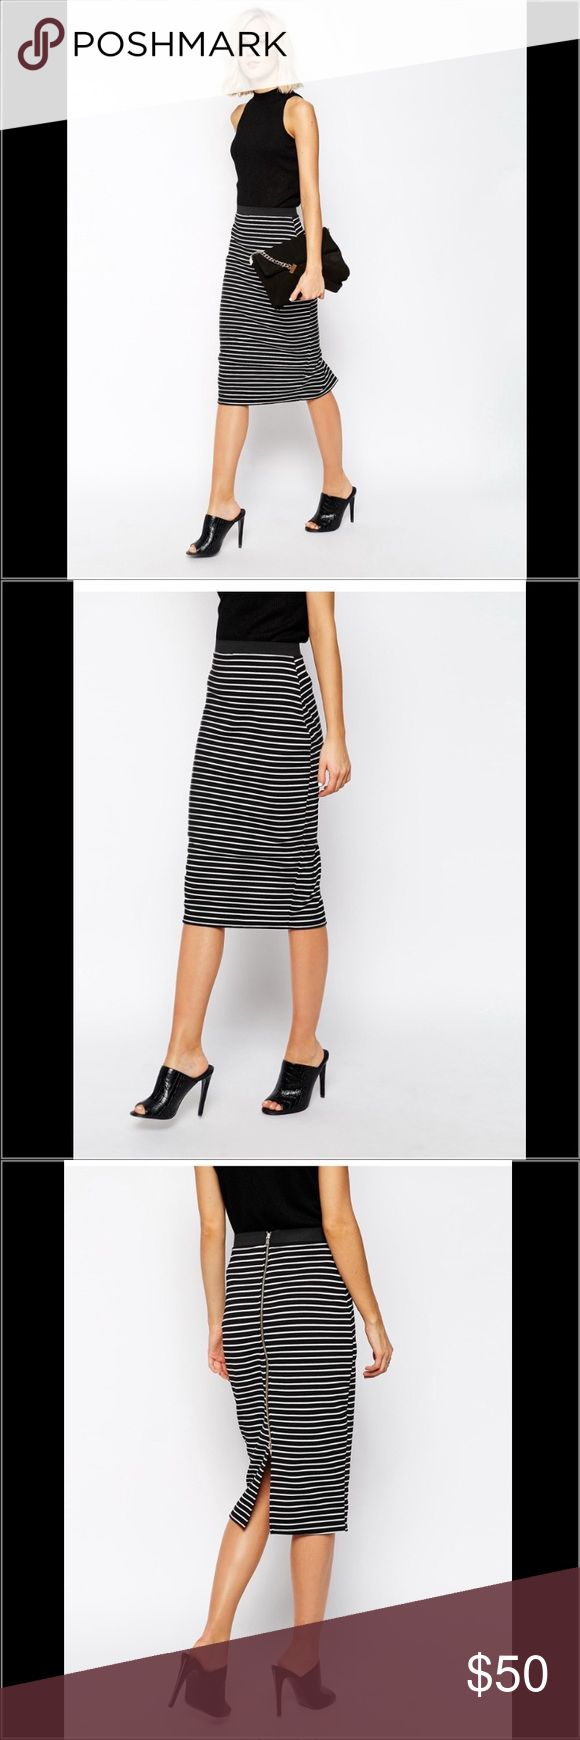 NWOT RIVER ISLAND ASOS STRIPE MIDI PENCIL SKIRT 2 NWOT AUTH RIVER ISLAND ASOS BRAND BLACK WHITE JERSEY MONO STRIPE MIDI PENCIL SKIRT BACK ZIP WMNS SZ 2 $68 100% Authentic RIVER ISLAND ASOS BRAND  Size: WOMENS size 2 (REG) Color: Black, white stripe Condition:  New without tags, store display; *see photos for specific detail Material:  96% POLYESTER, 4% ELASTANE; PRODUCT CODE: 619243 Made in  Combined shipping discount with purchase of additional items. All items come from a CLEAN, SMOKE-FREE…